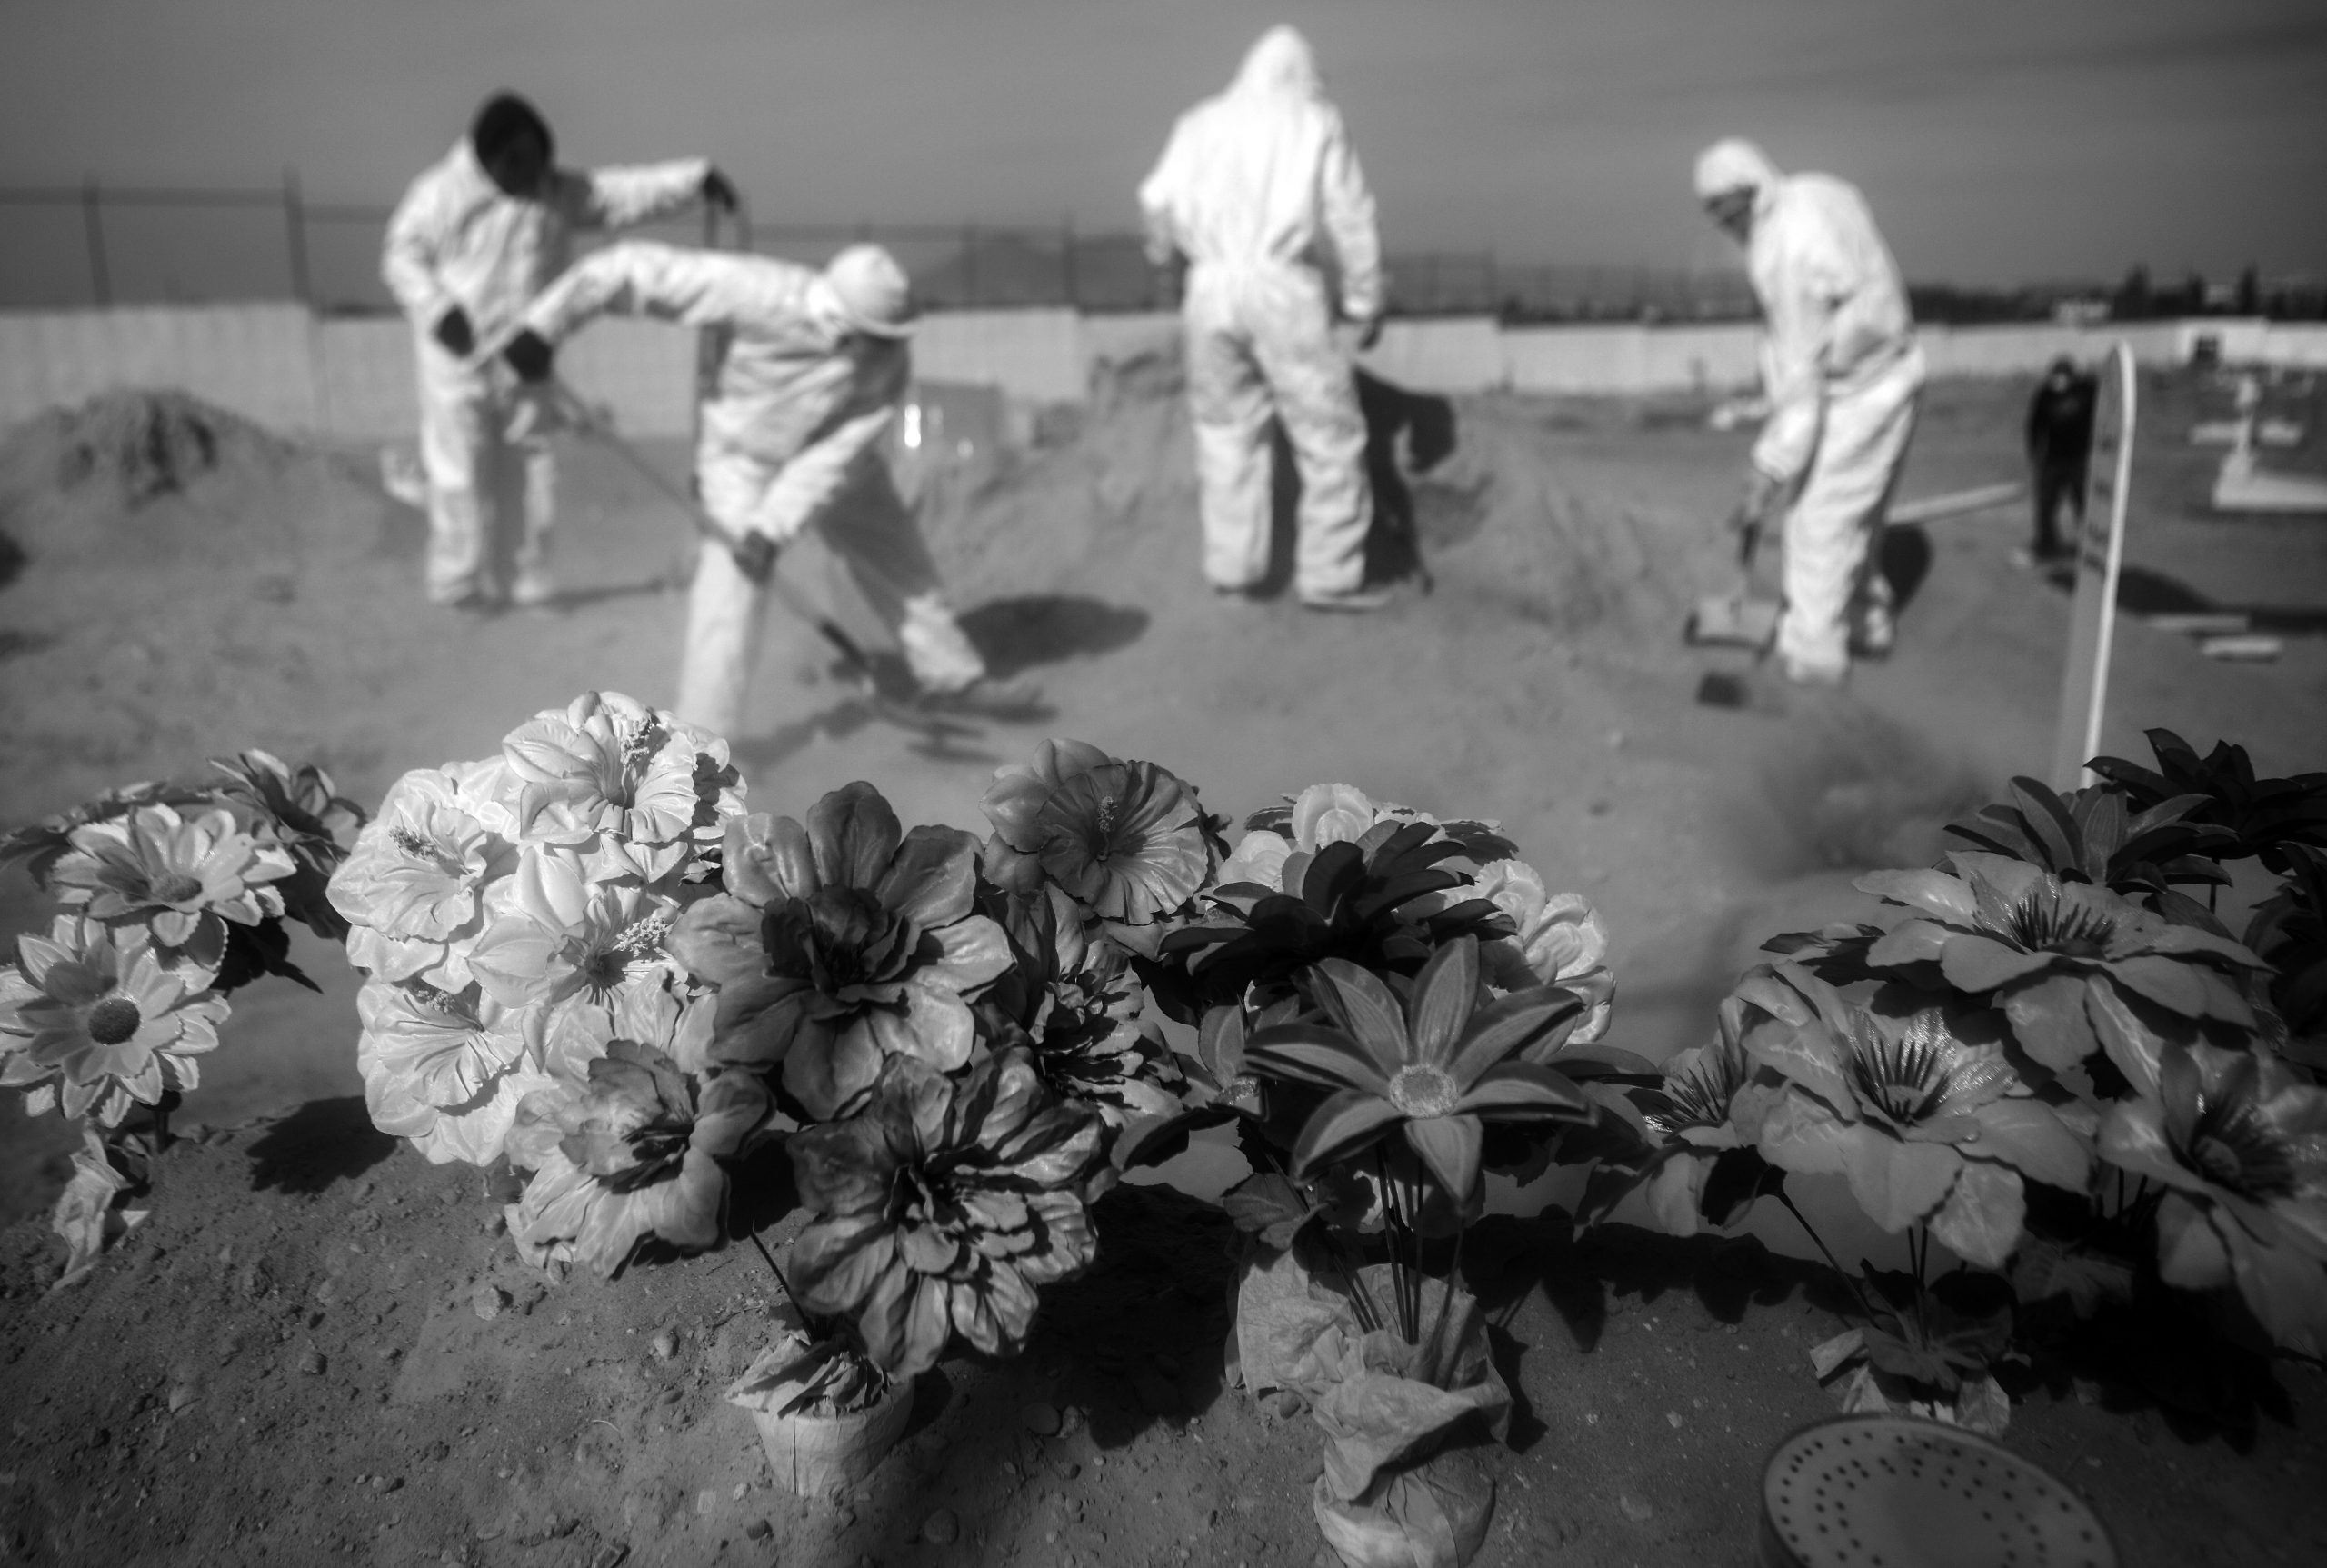 Ciudad Juarez Cemeteries Try To Keep Pace With Funerals Amid COVID-19 Pandemic